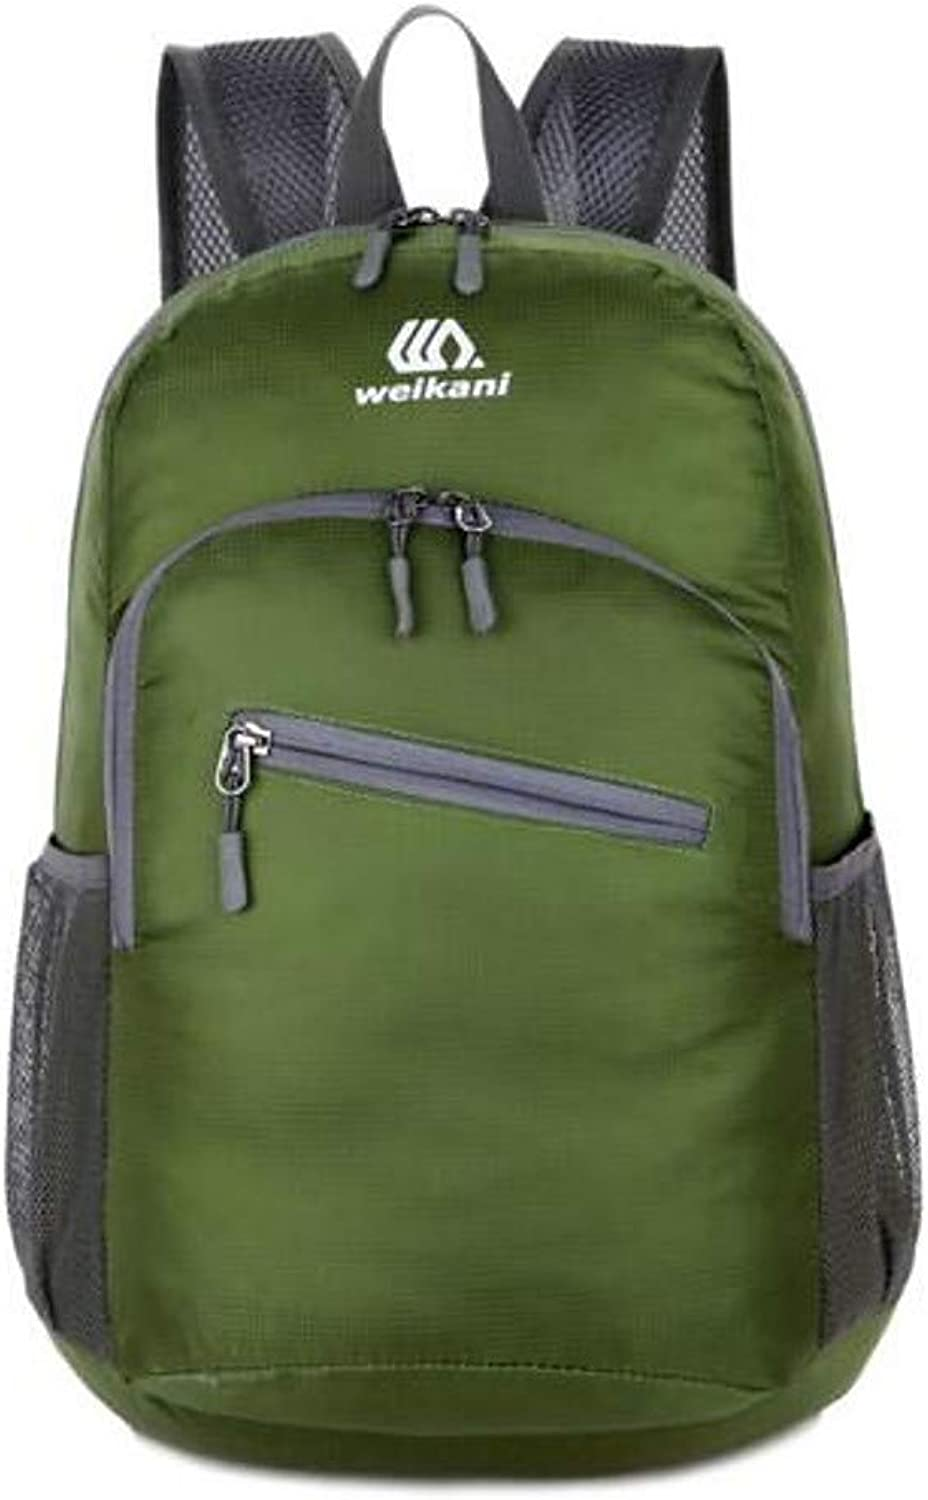 Show Time backpack:Women's Bags Nylon Backpack Zipper Solid color Fuchsia Navy blueee Army Green